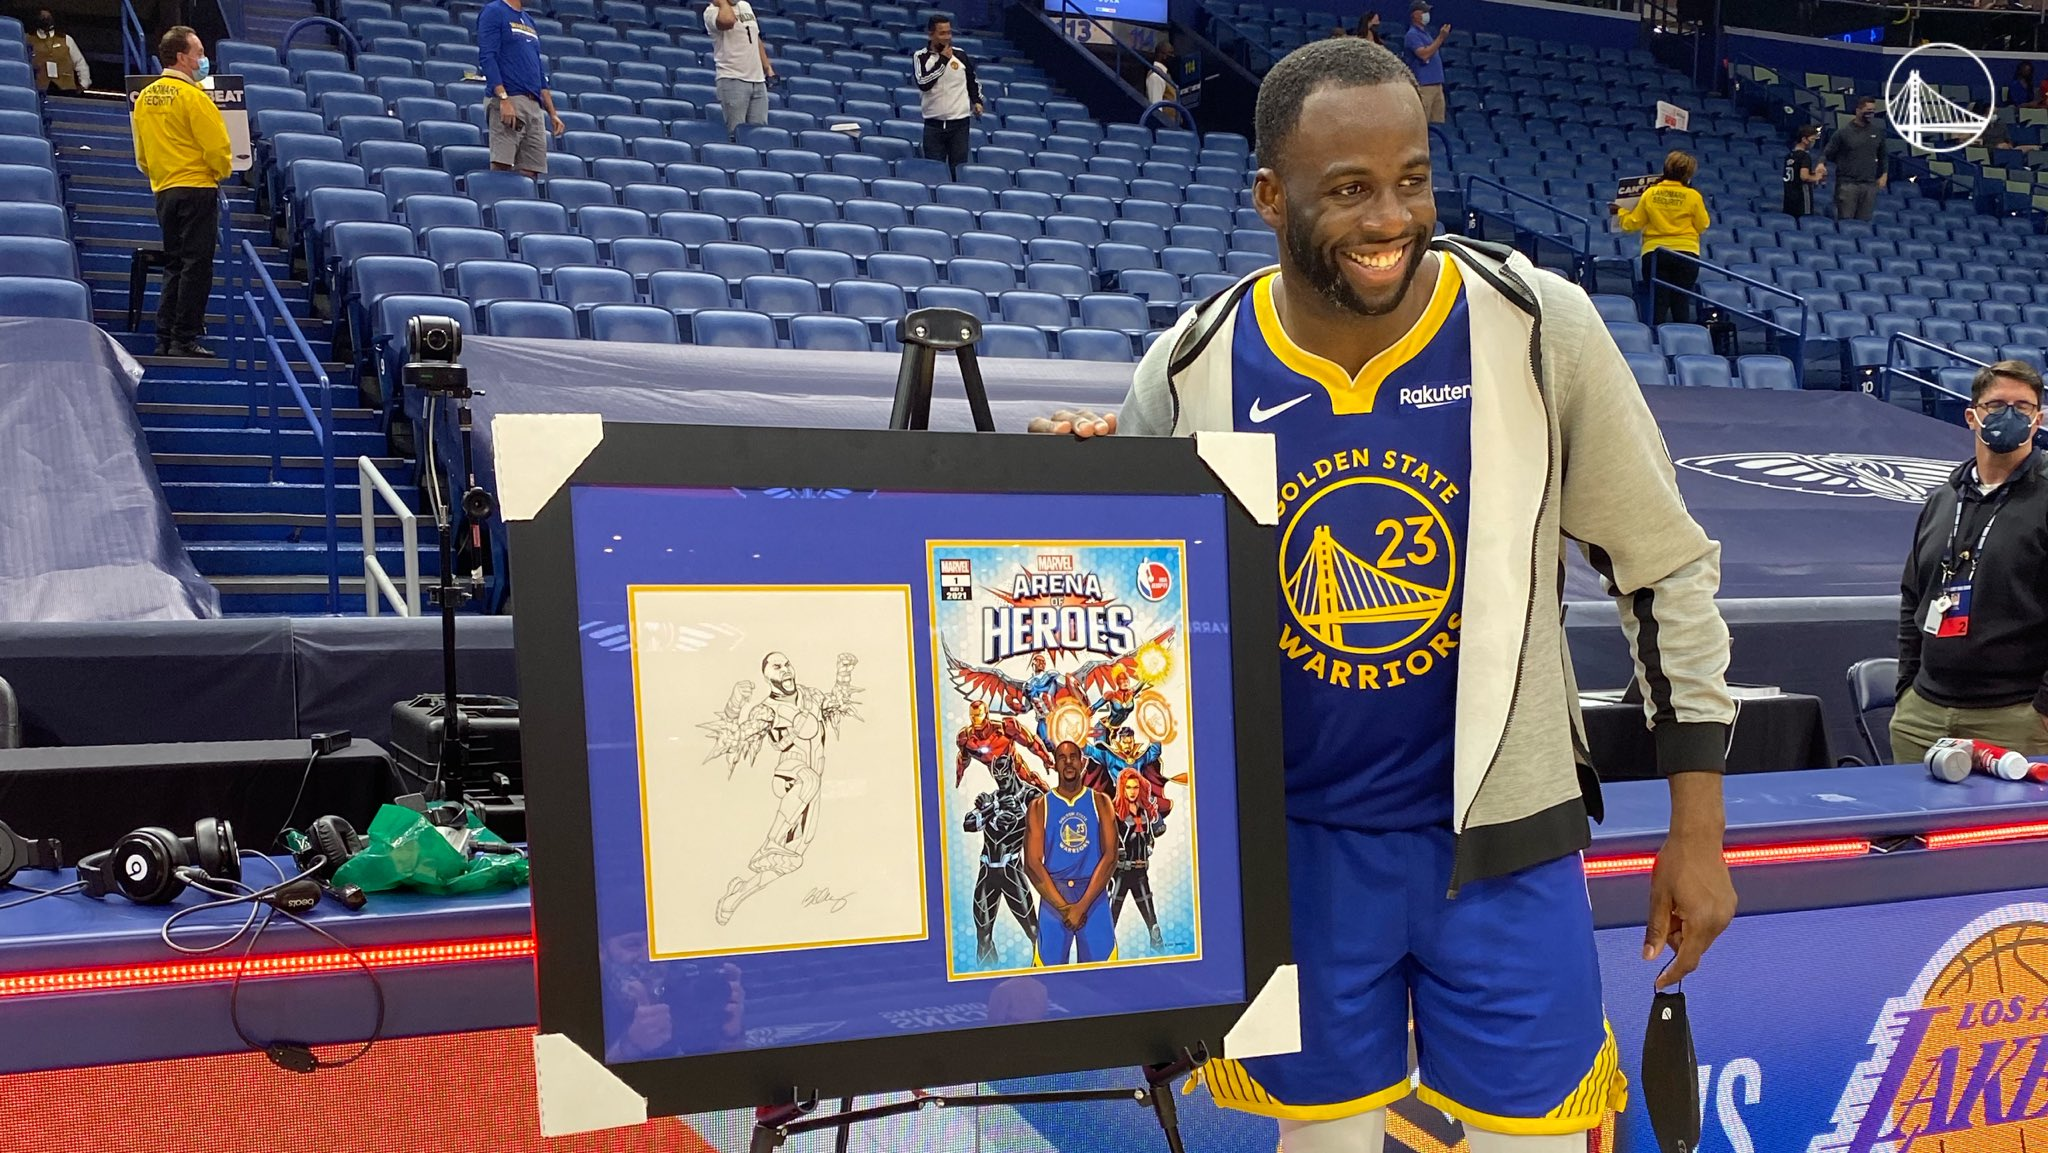 Draymond poses next to the Arena of Heroes champion poster